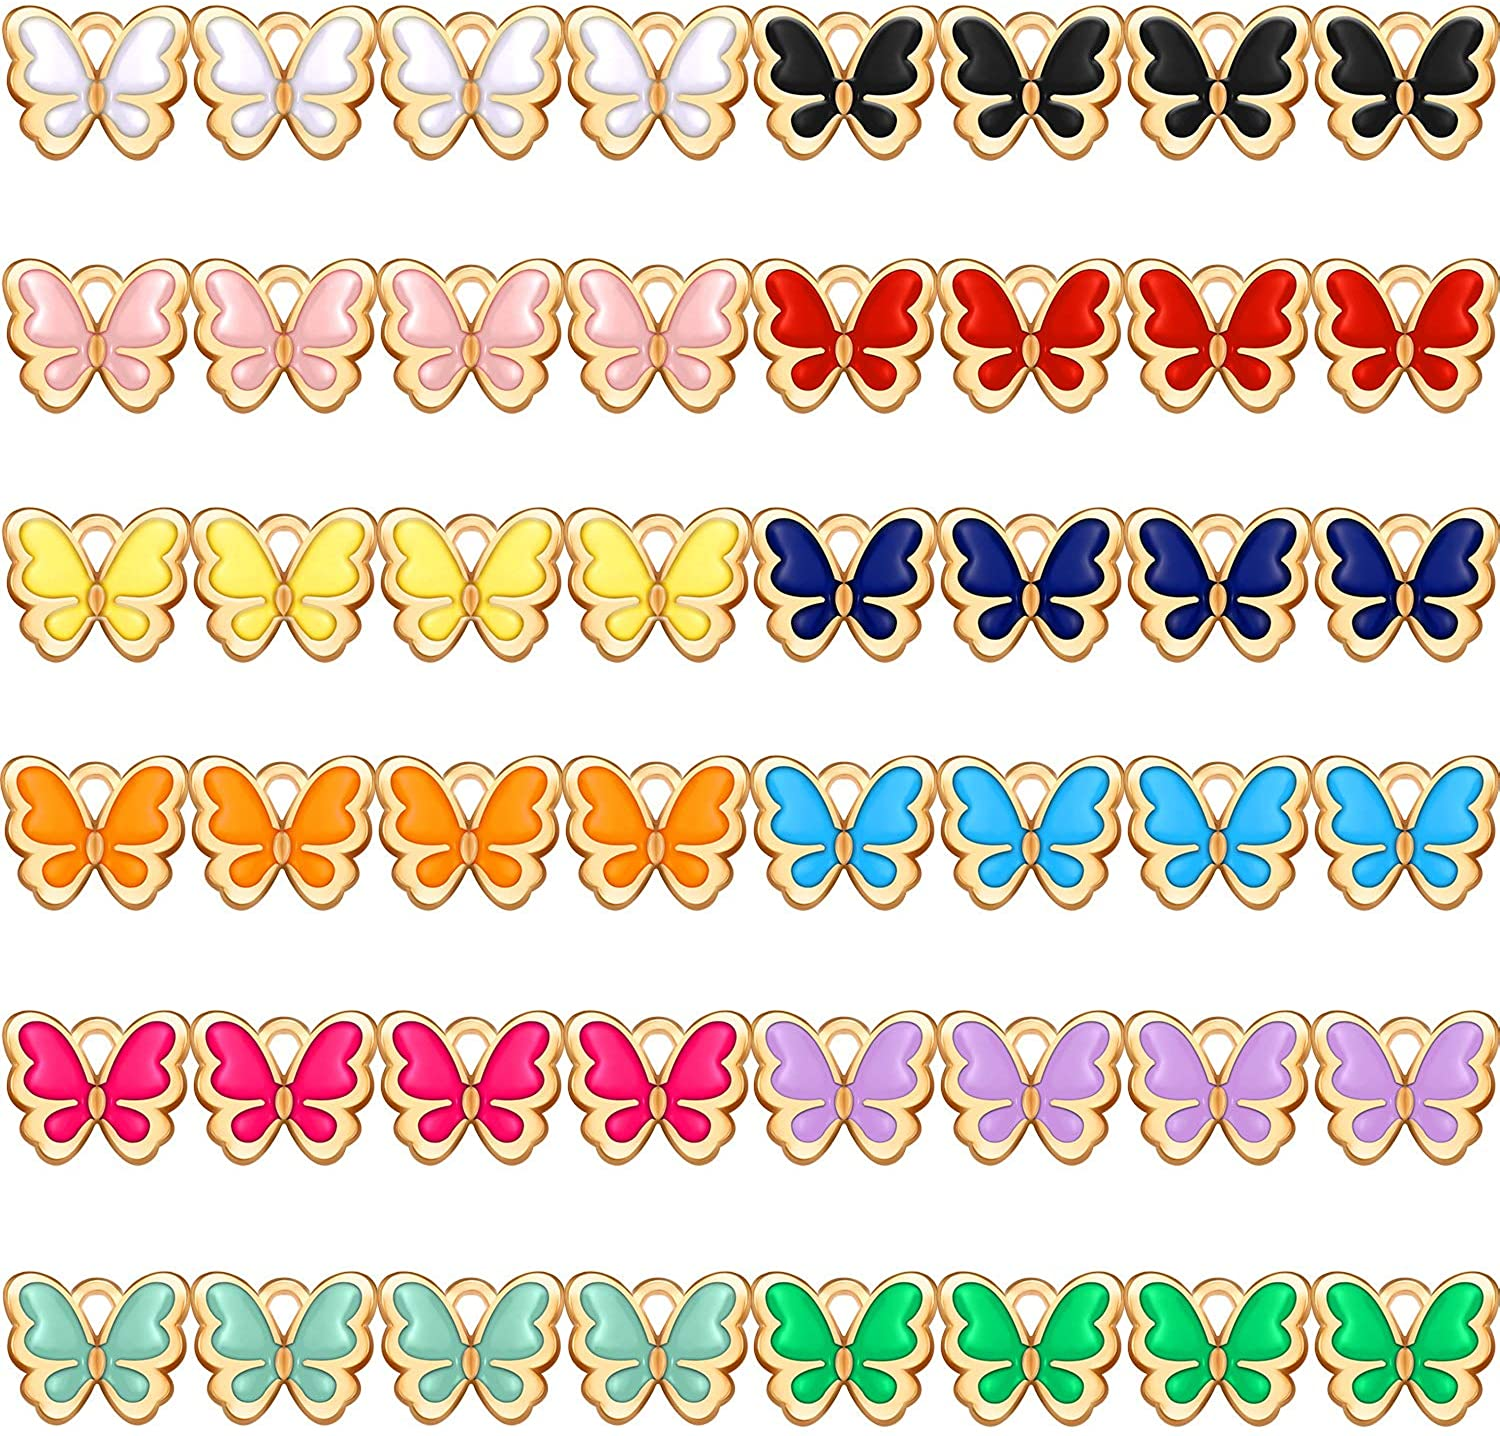 48 Pieces Enamel Butterfly Charms Colorful Butterfly Pendants Bracelet Pendant Charms for Jewelry Making DIY Bracelet Crafting Accessory